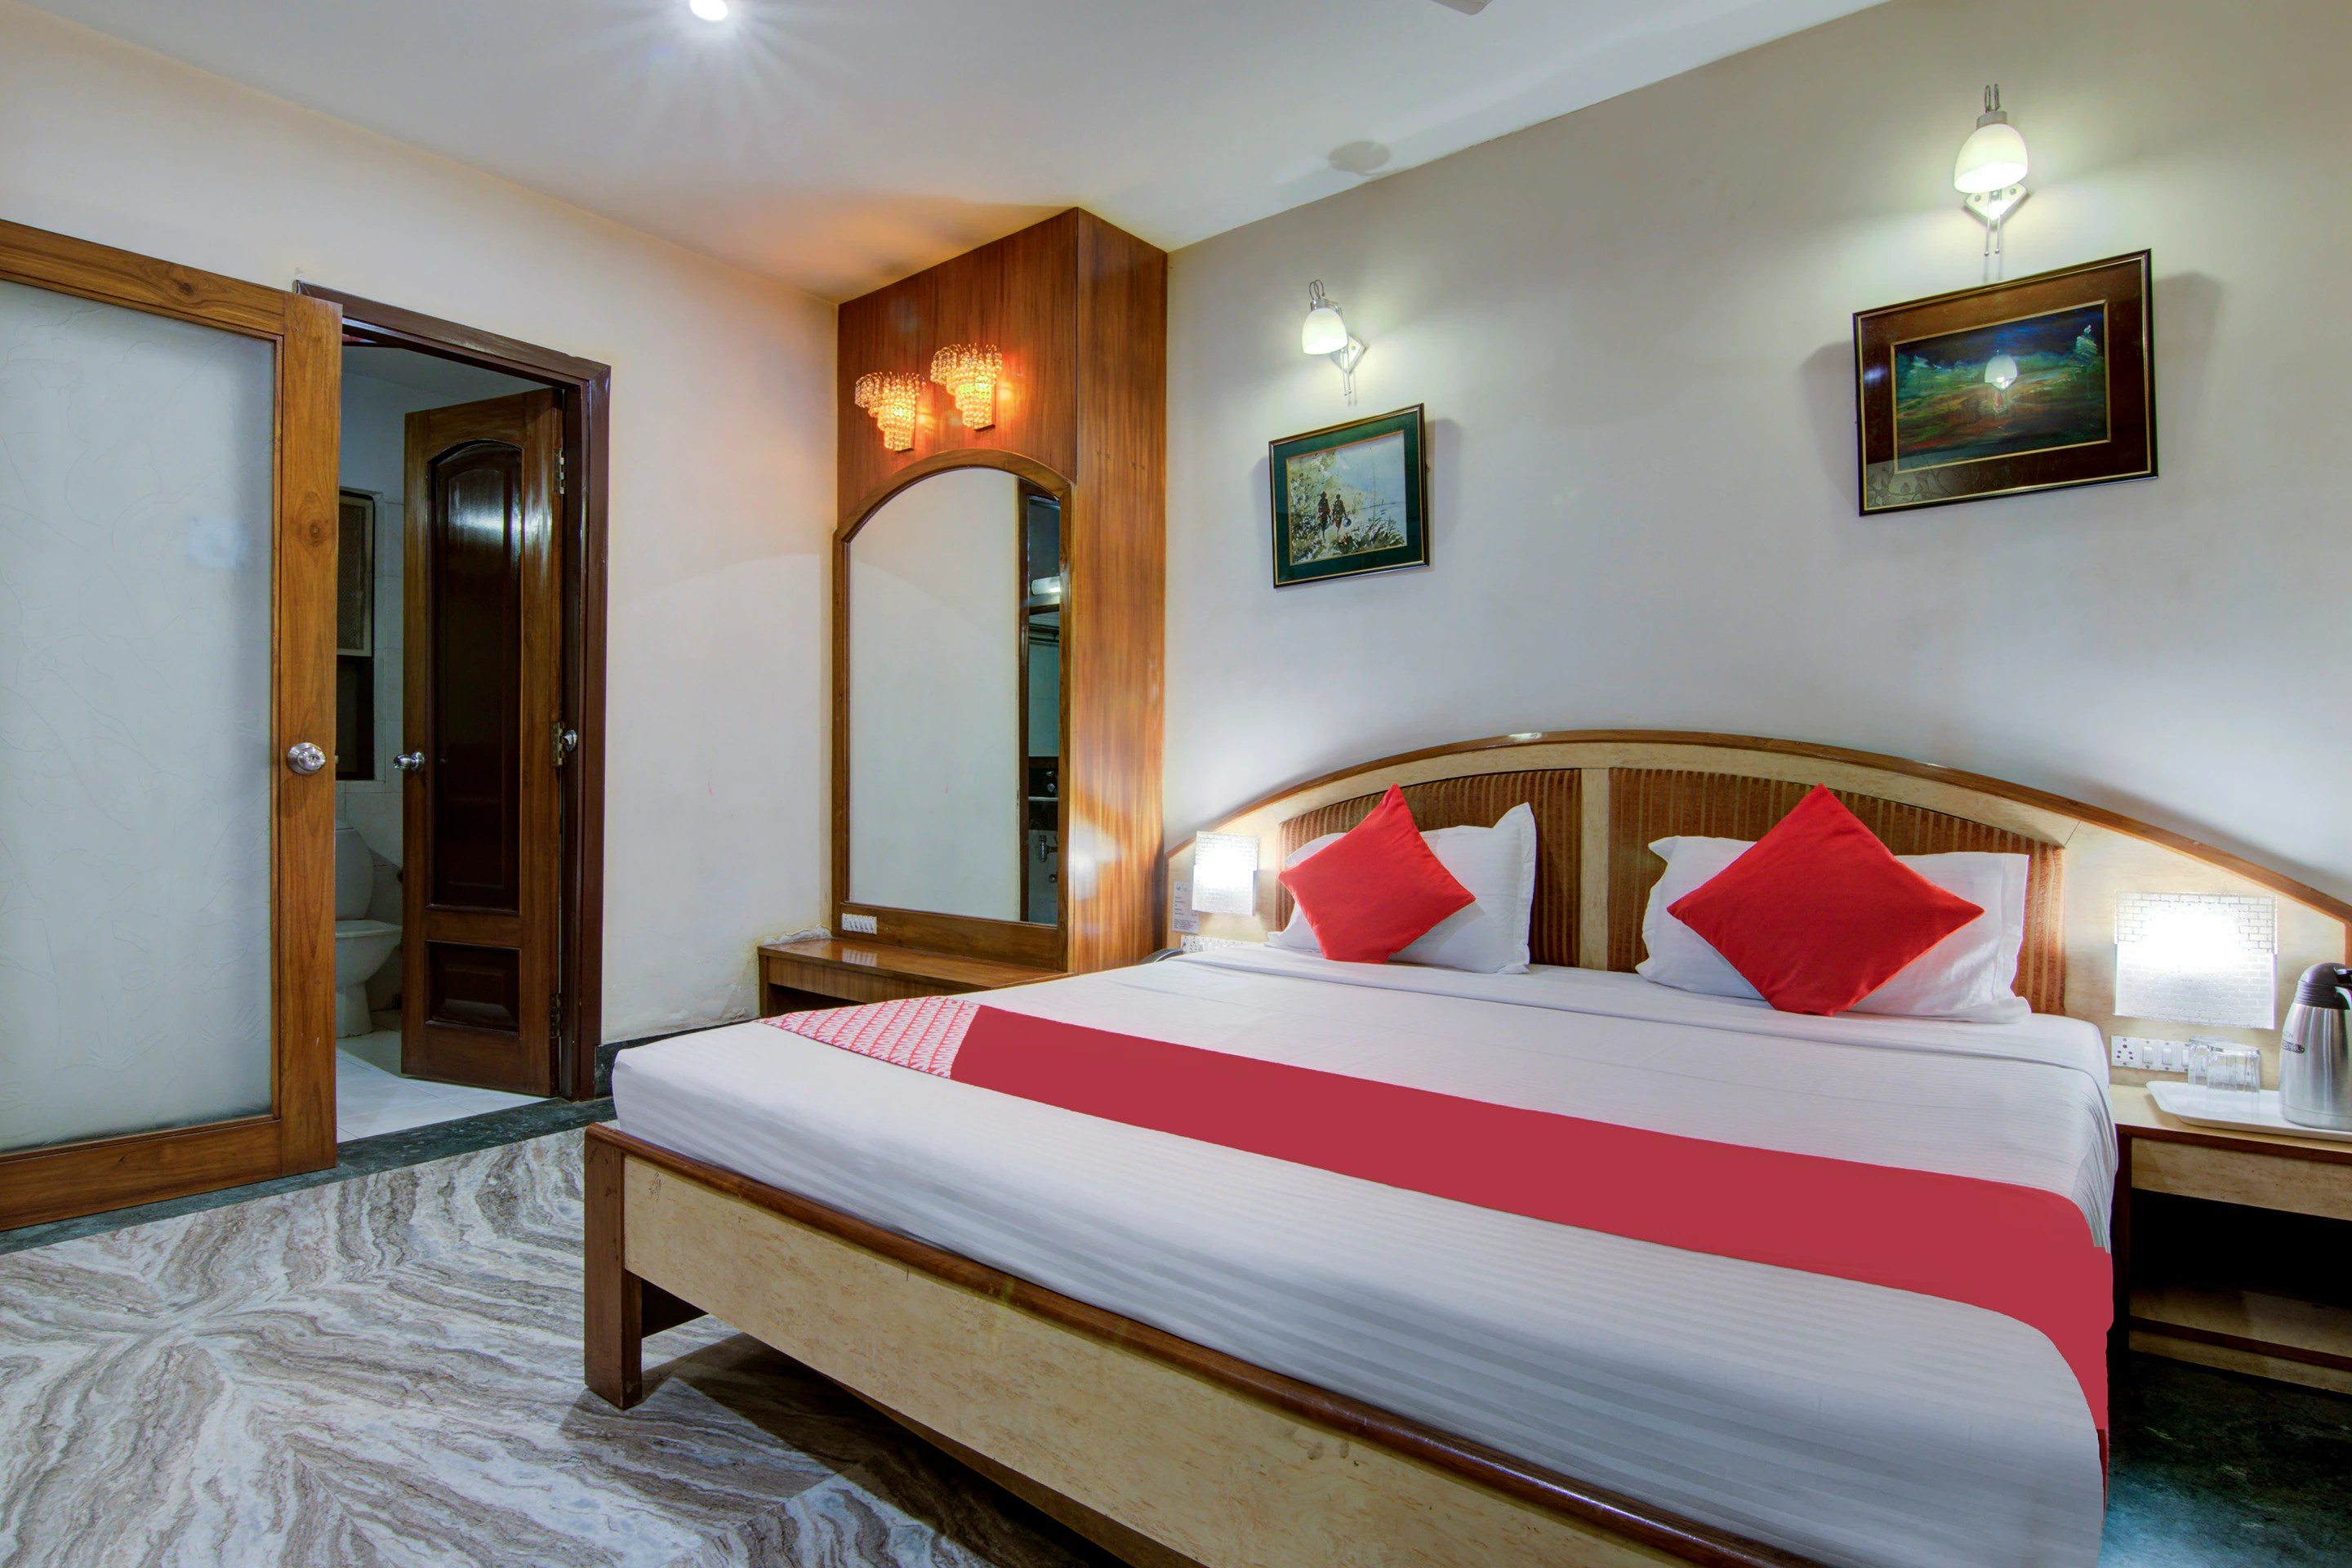 Hotels In Snp Area Jamshedpur With In House Restaurant